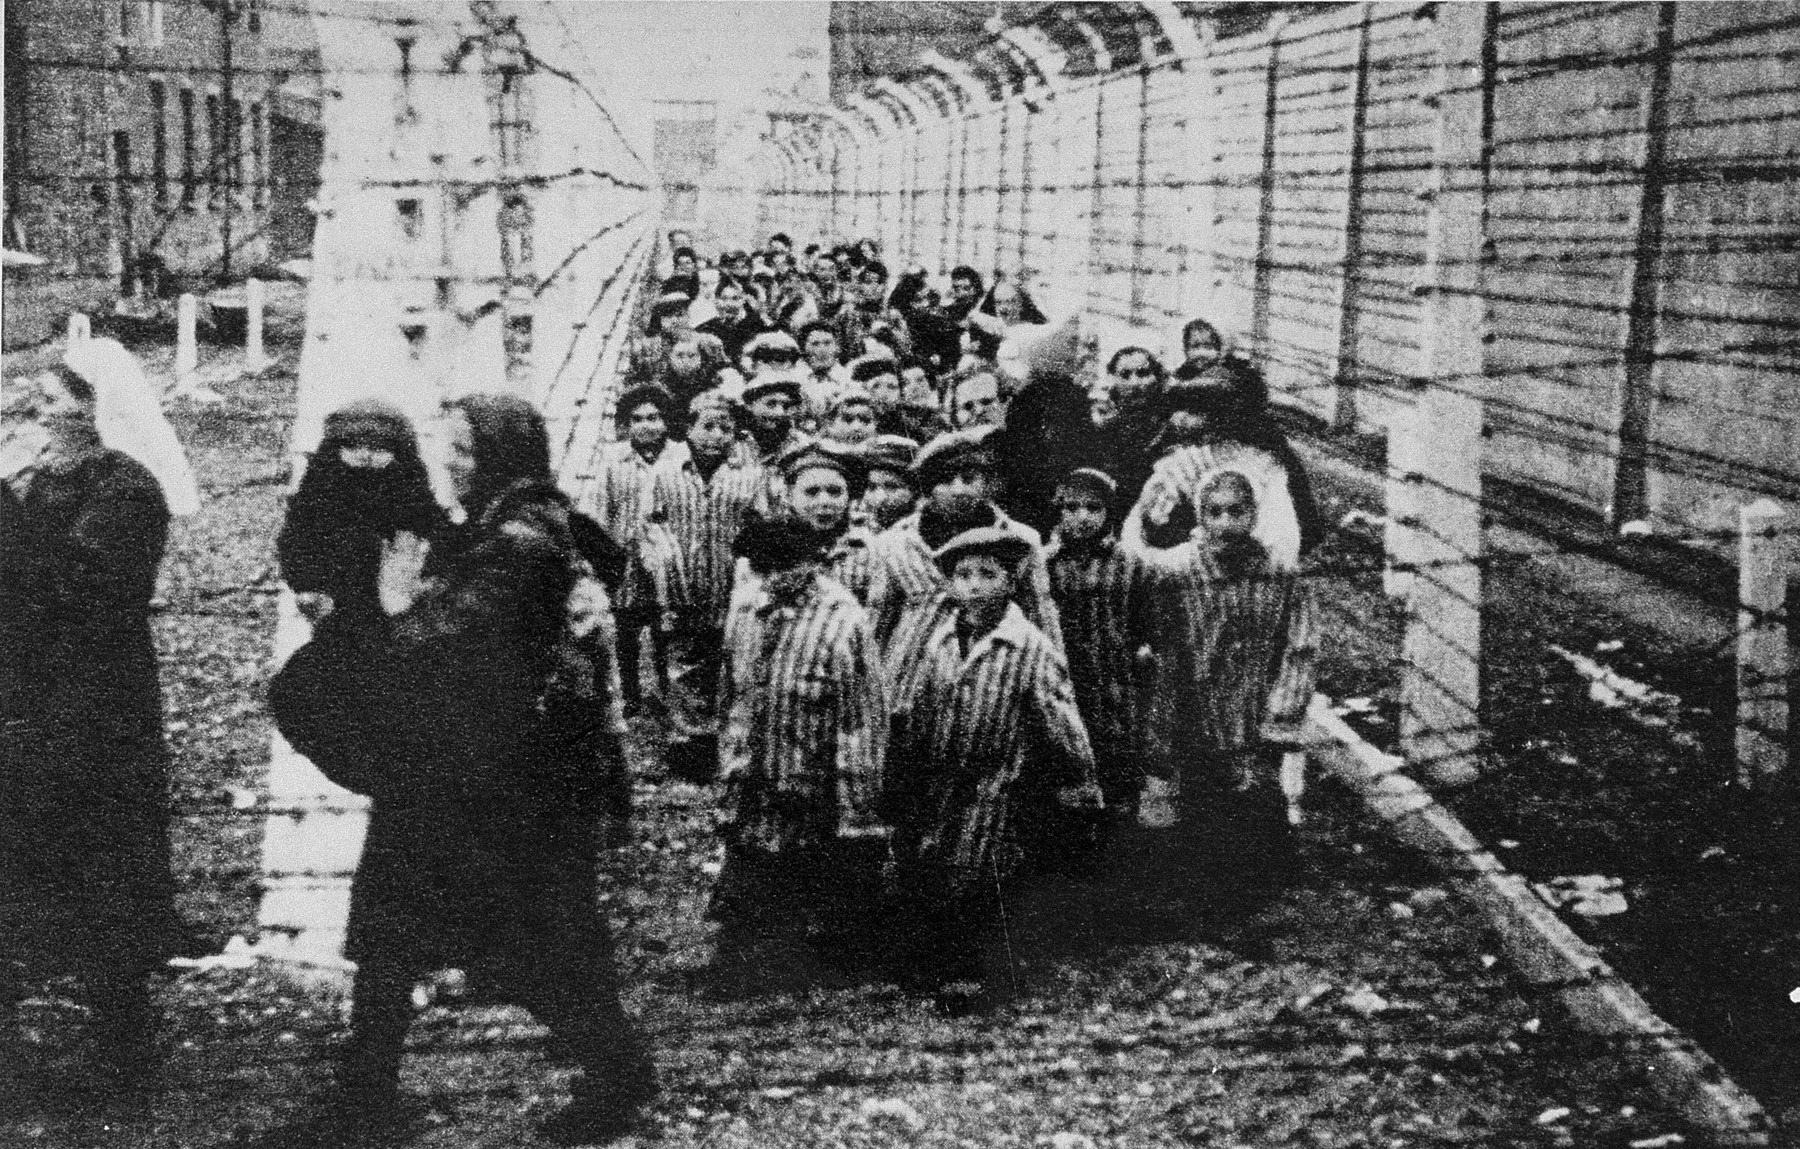 Wearing adult-size prisoner jackets, child survivors of Auschwitz are led by relief workers and Soviet soldiers through a narrow passage between two barbed-wire fences.  STILL PHOTOGRAPH FROM THE SOVIET FILM of the liberation of Auschwitz, taken by the film unit of the First Ukrainian Front.